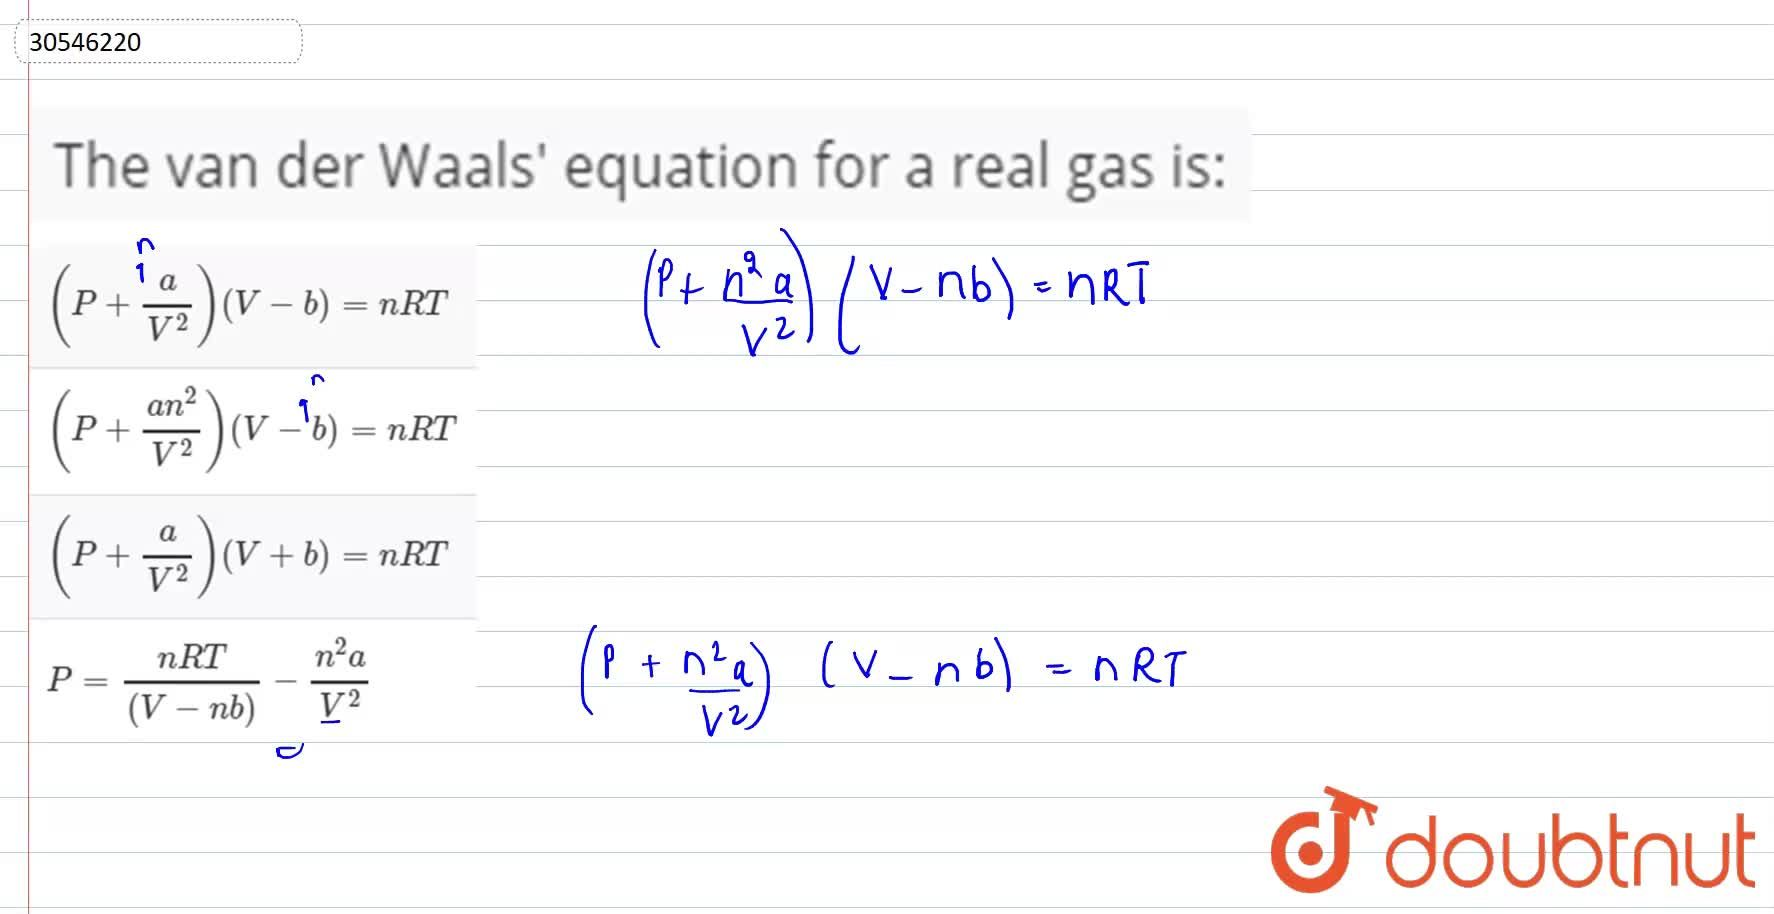 Solution for The van der Waals' equation for a real gas is: